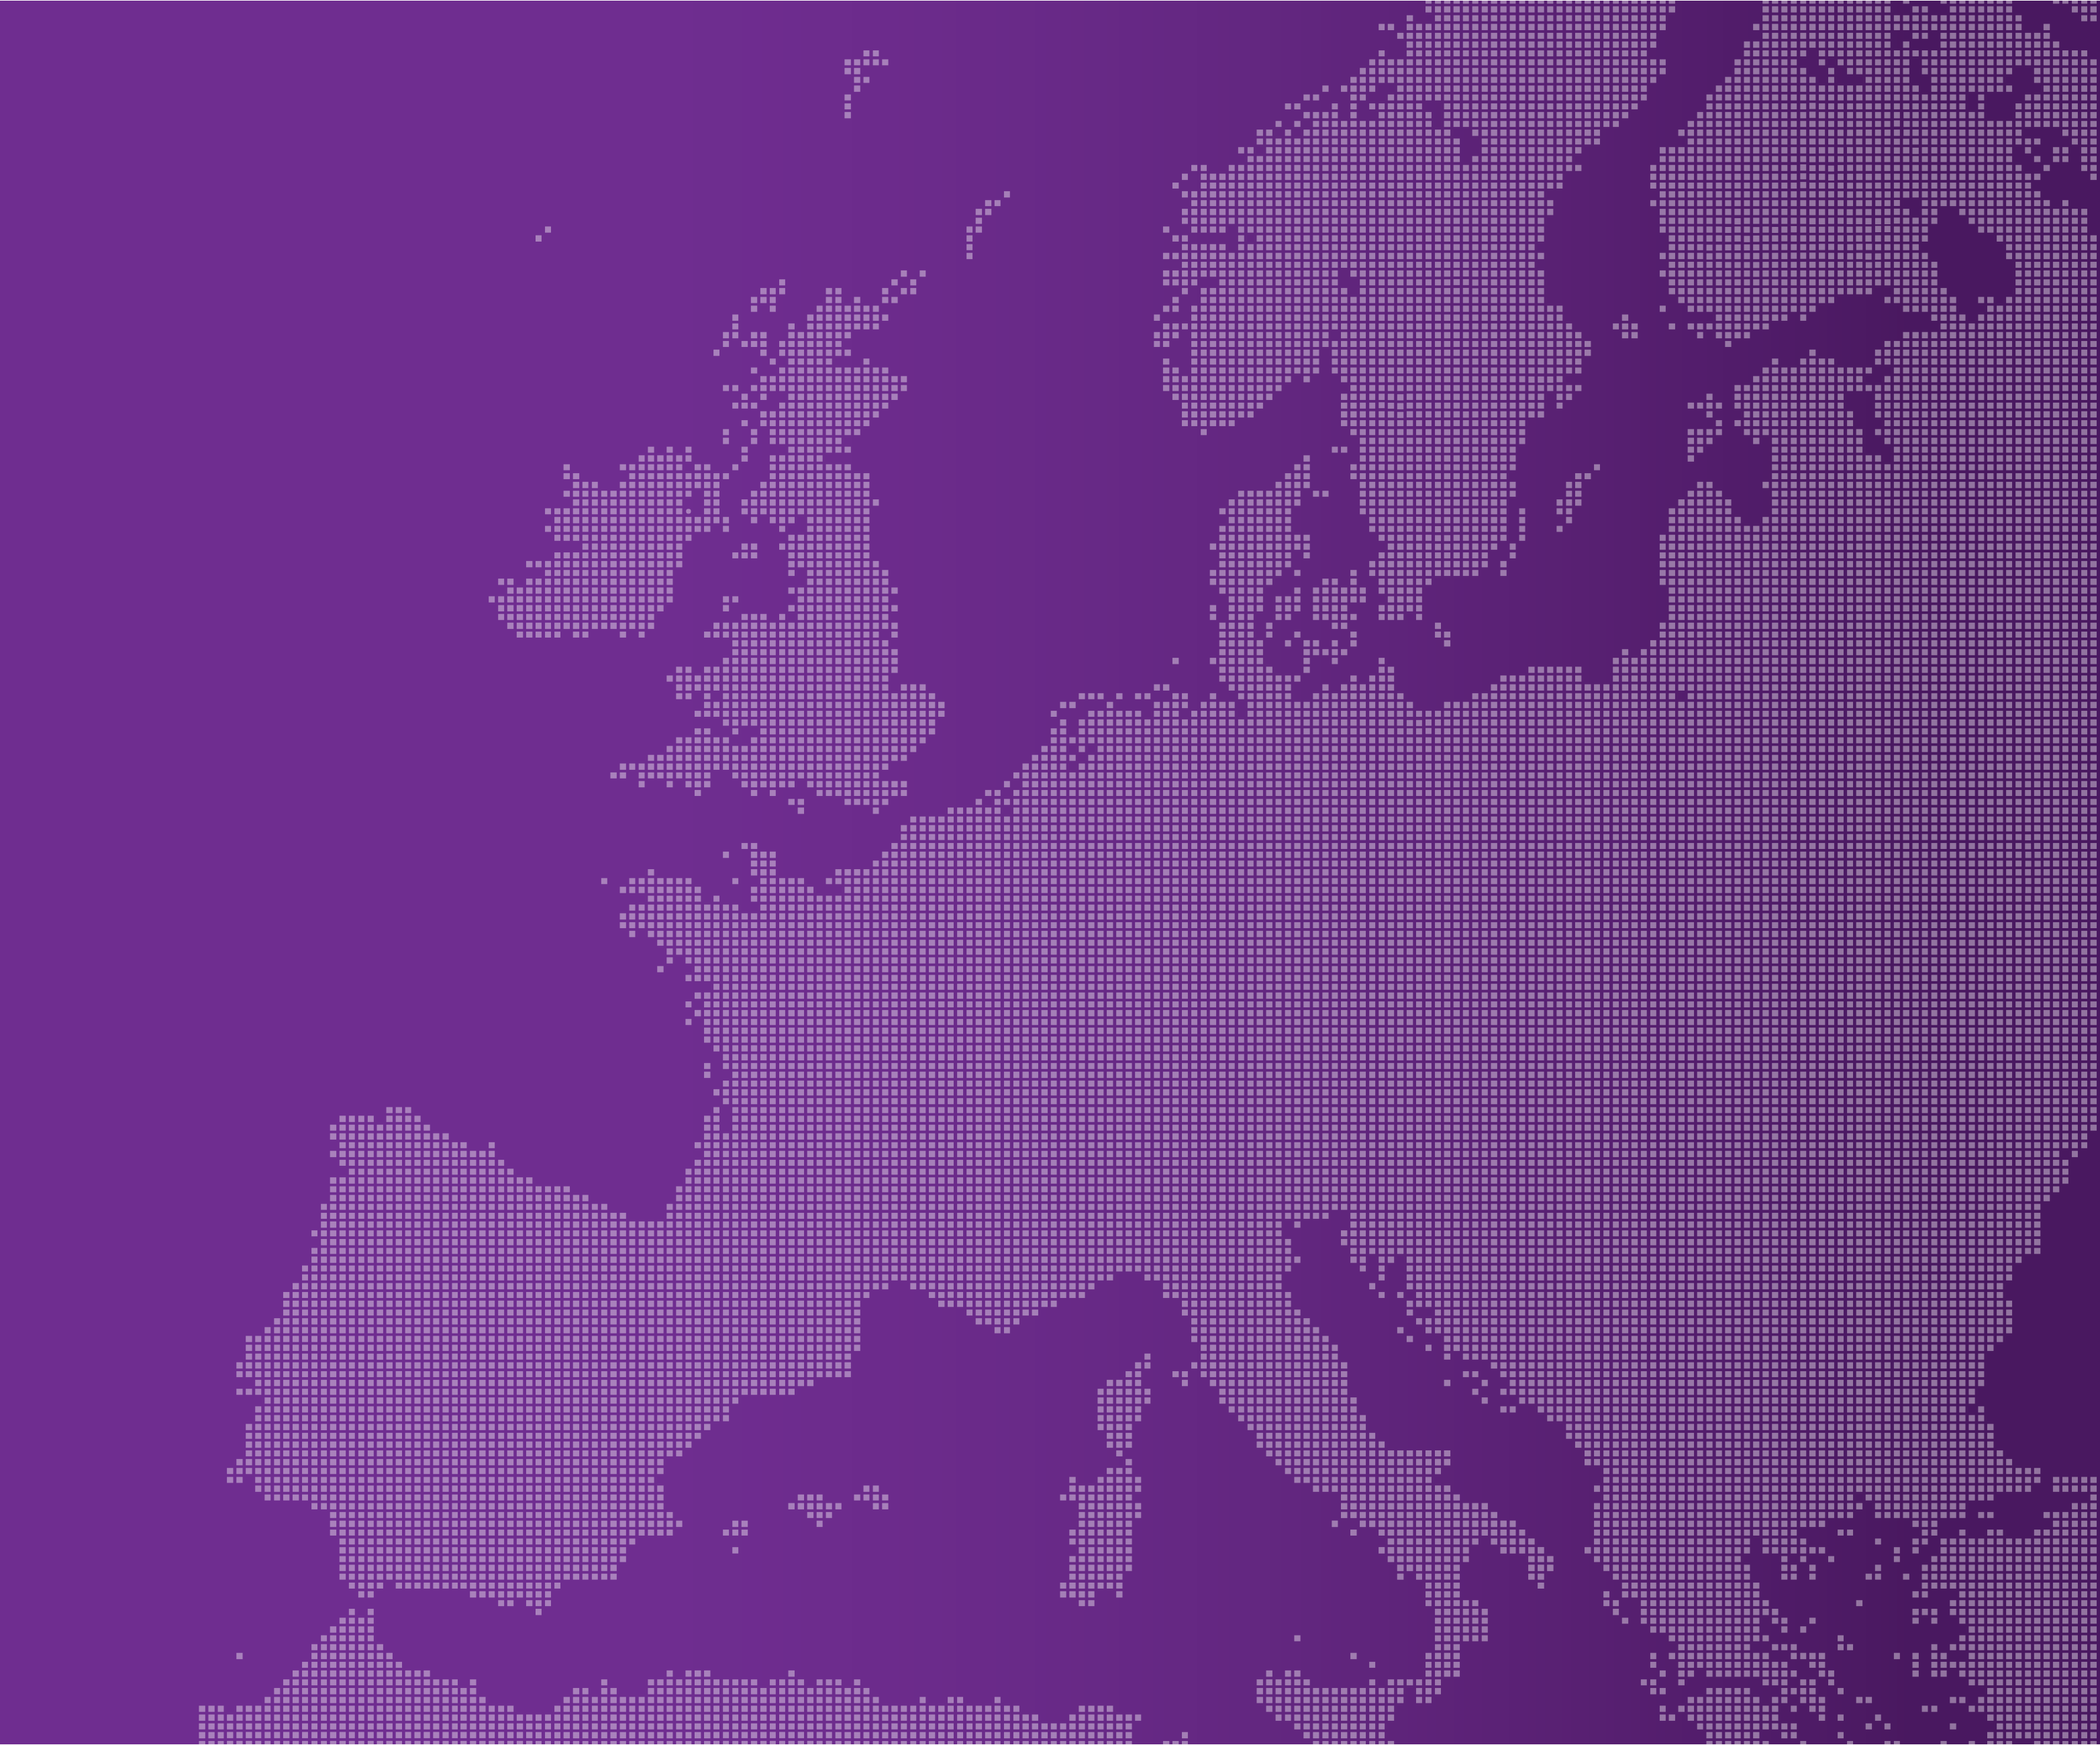 22 EFA parties campaigning for a Europe of all peoples